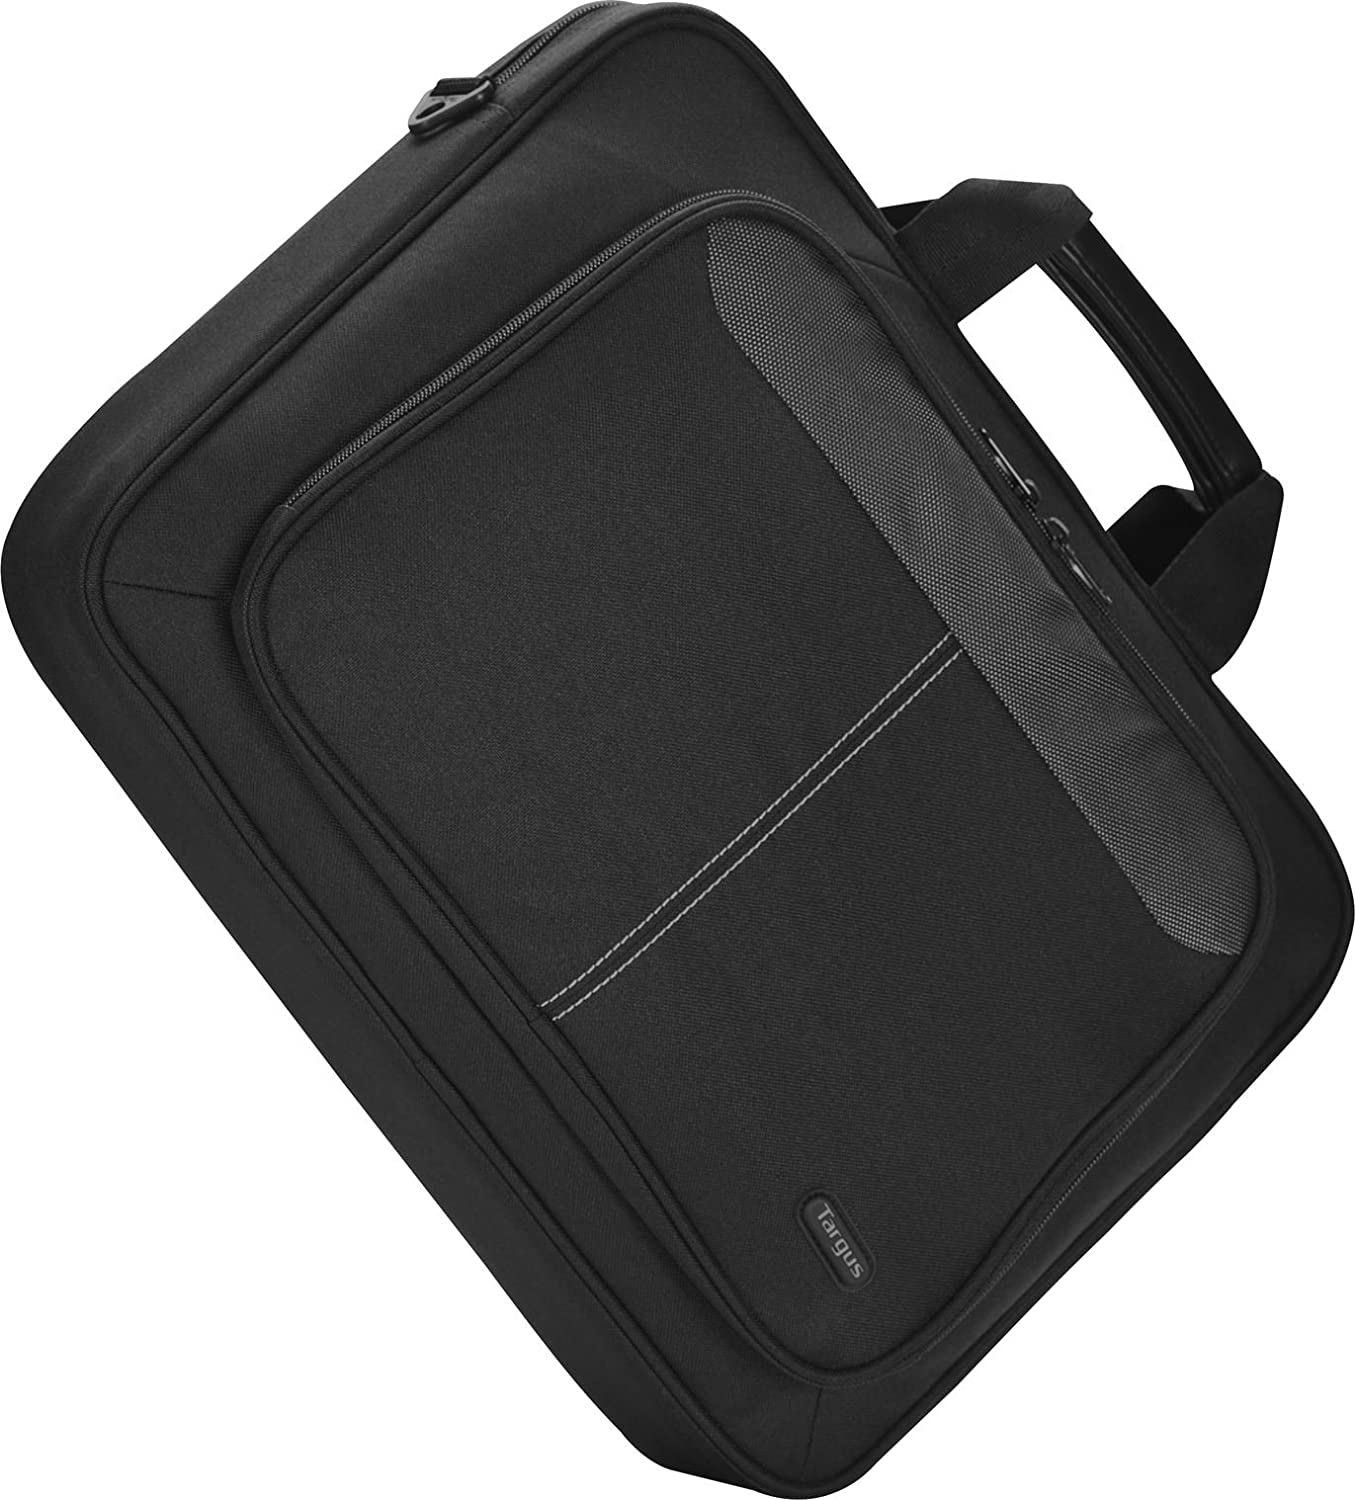 TBT260 Targus Intellect Slipcase Bag for 14-Inch Laptop and Tablet Black